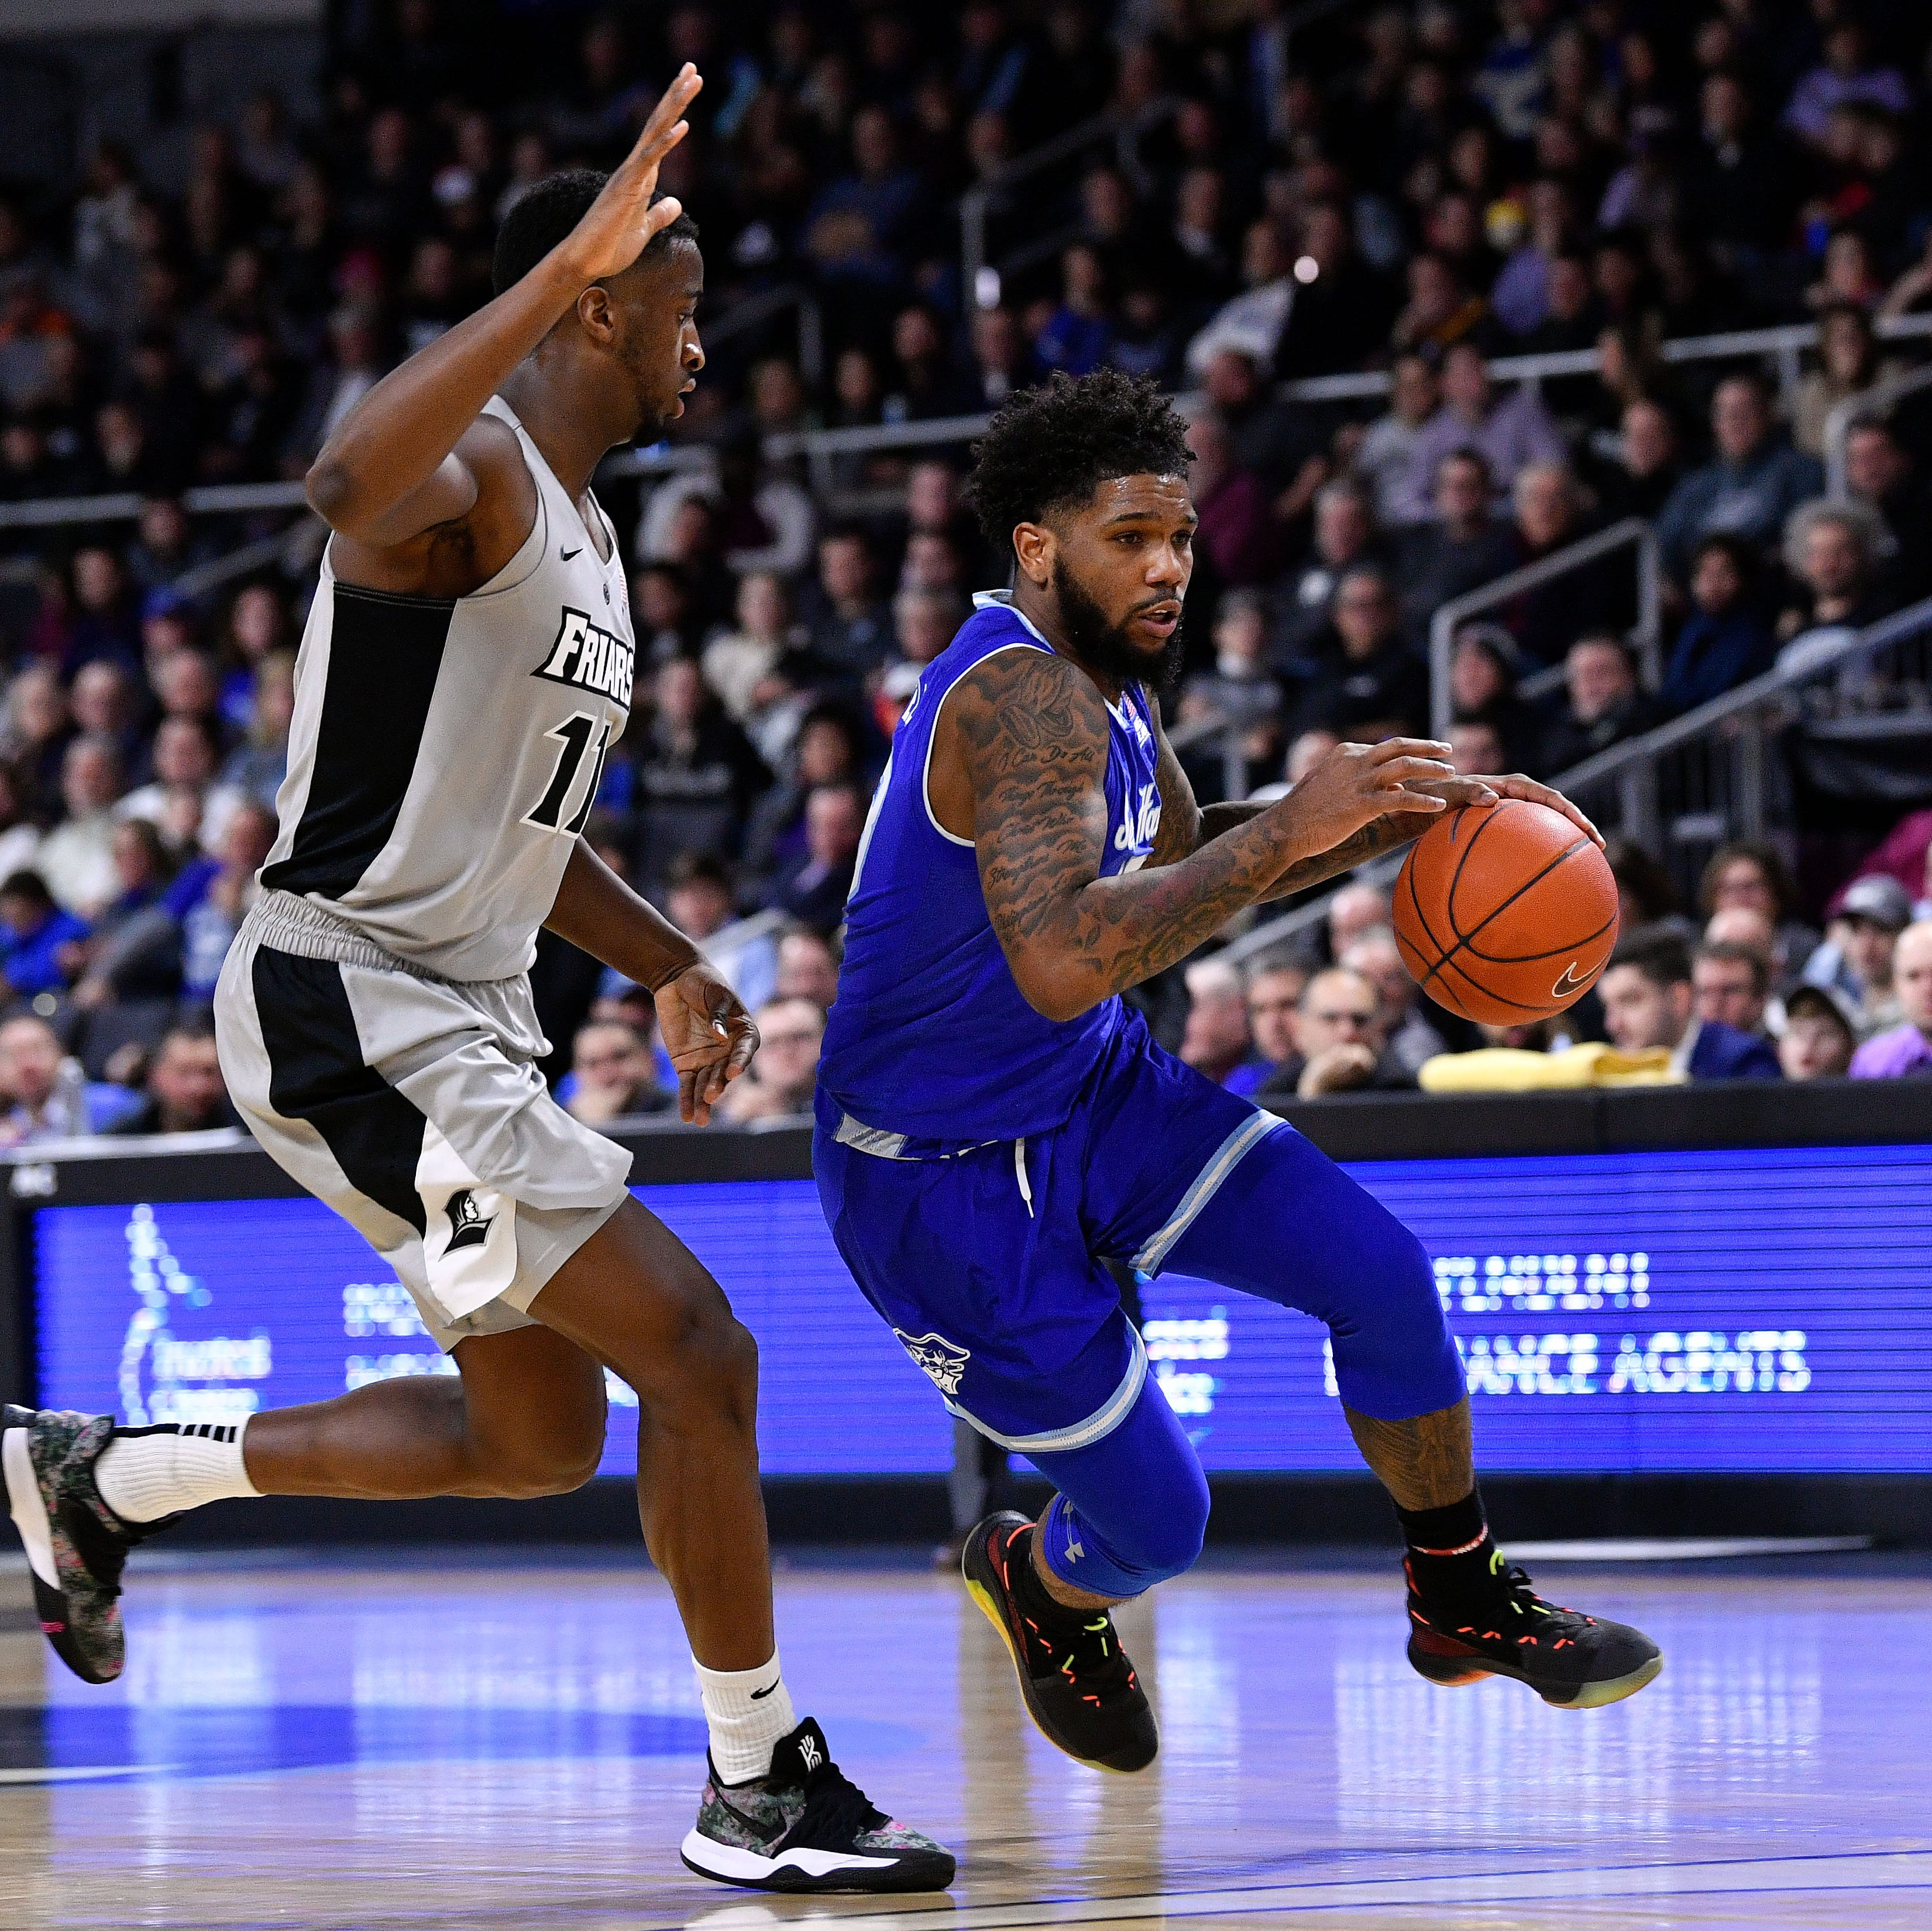 Seton Hall basketball's offense implodes at Providence